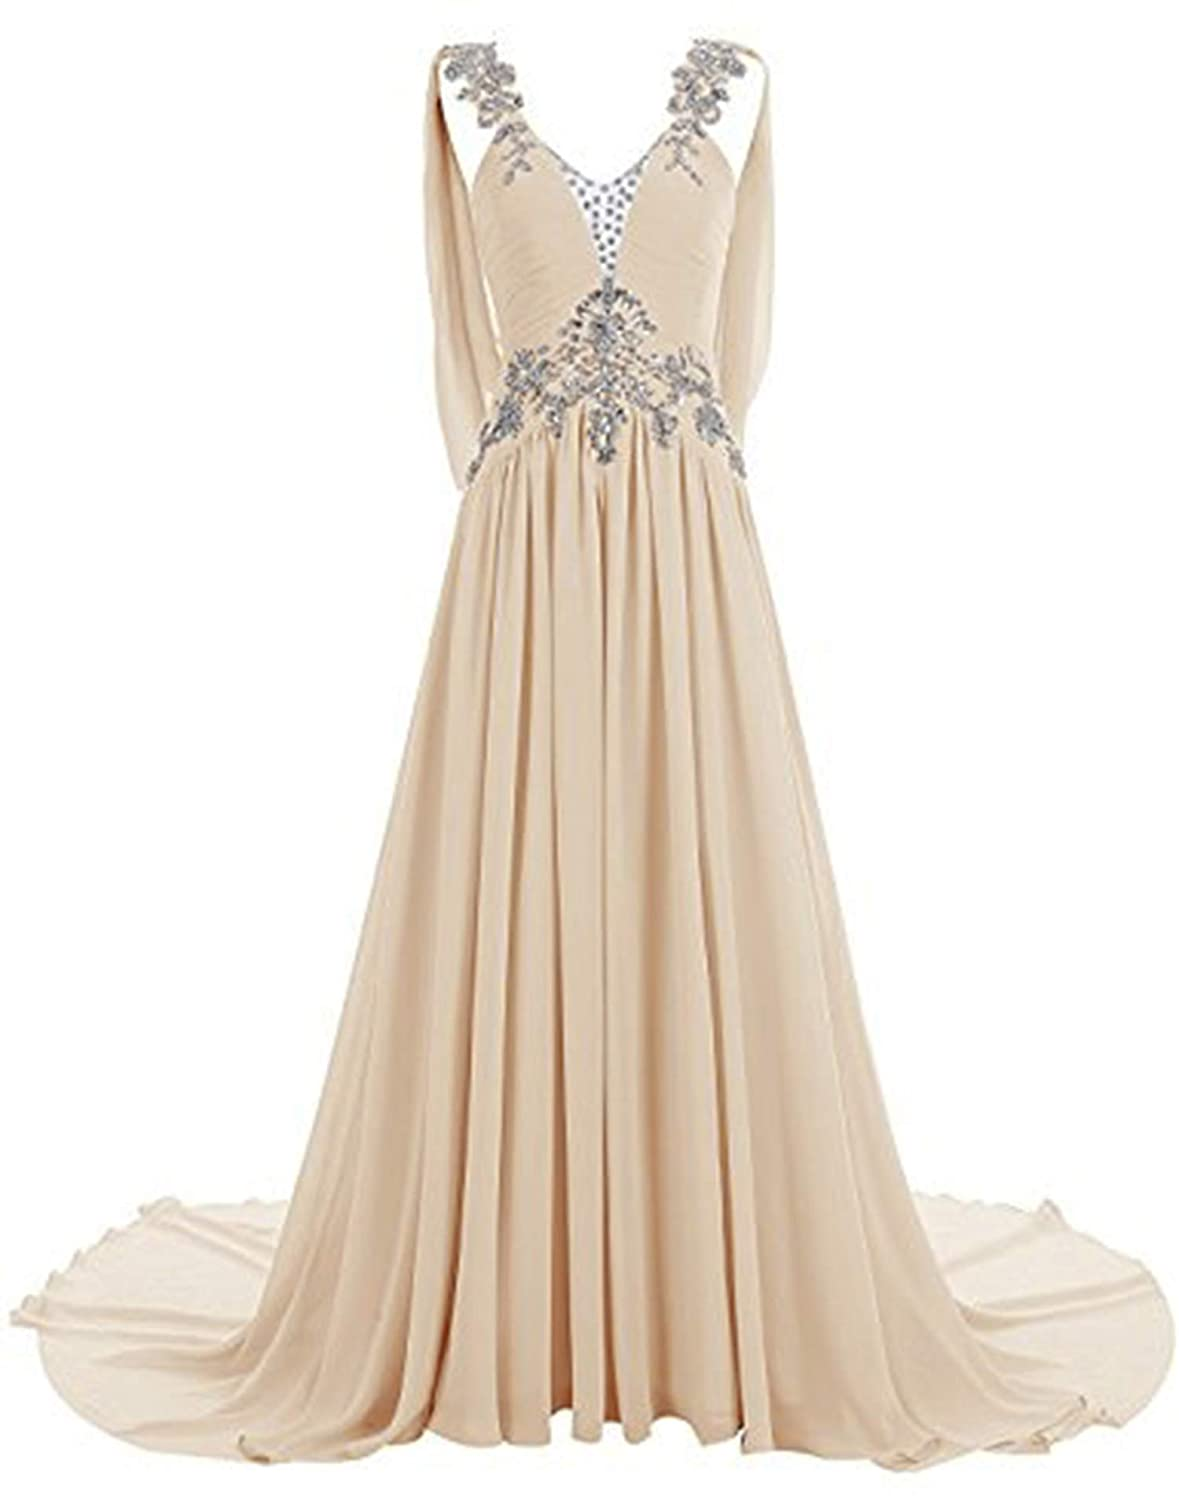 Champagne CL Bridal Women's Beaded Rhinestones Straps V Neck Court Train Bridesmaid Dress